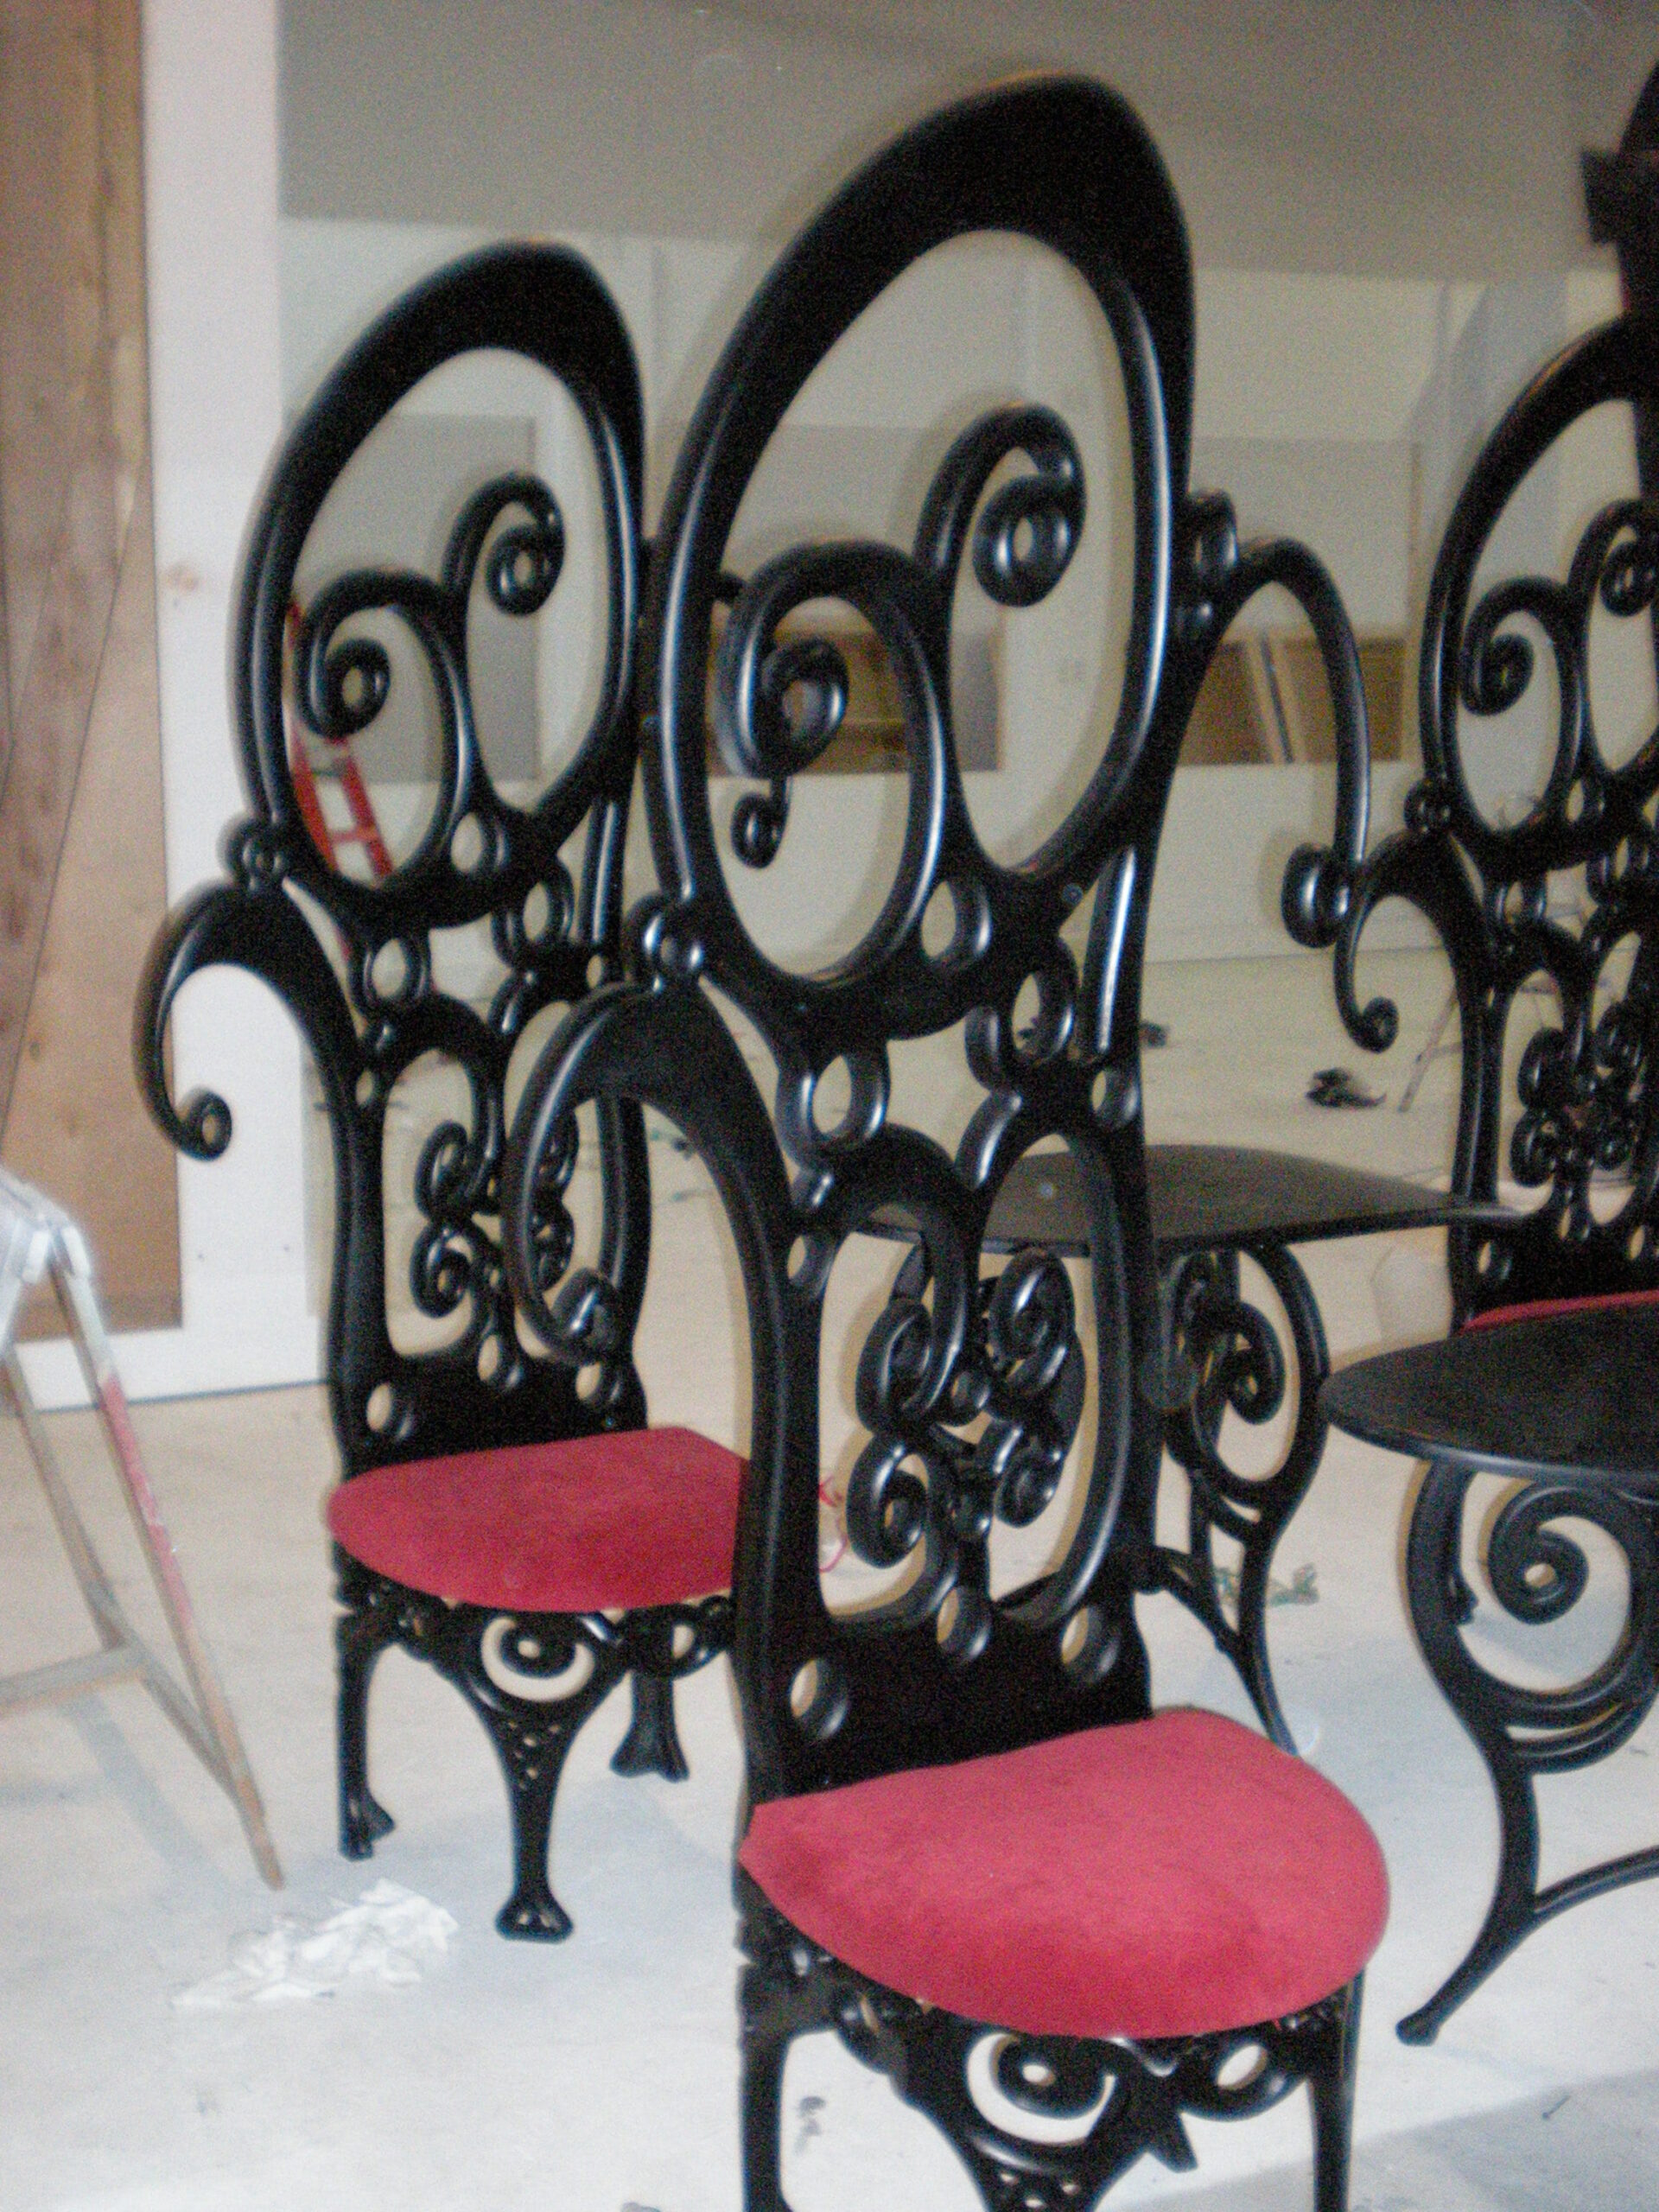 propmasters-props-chairs